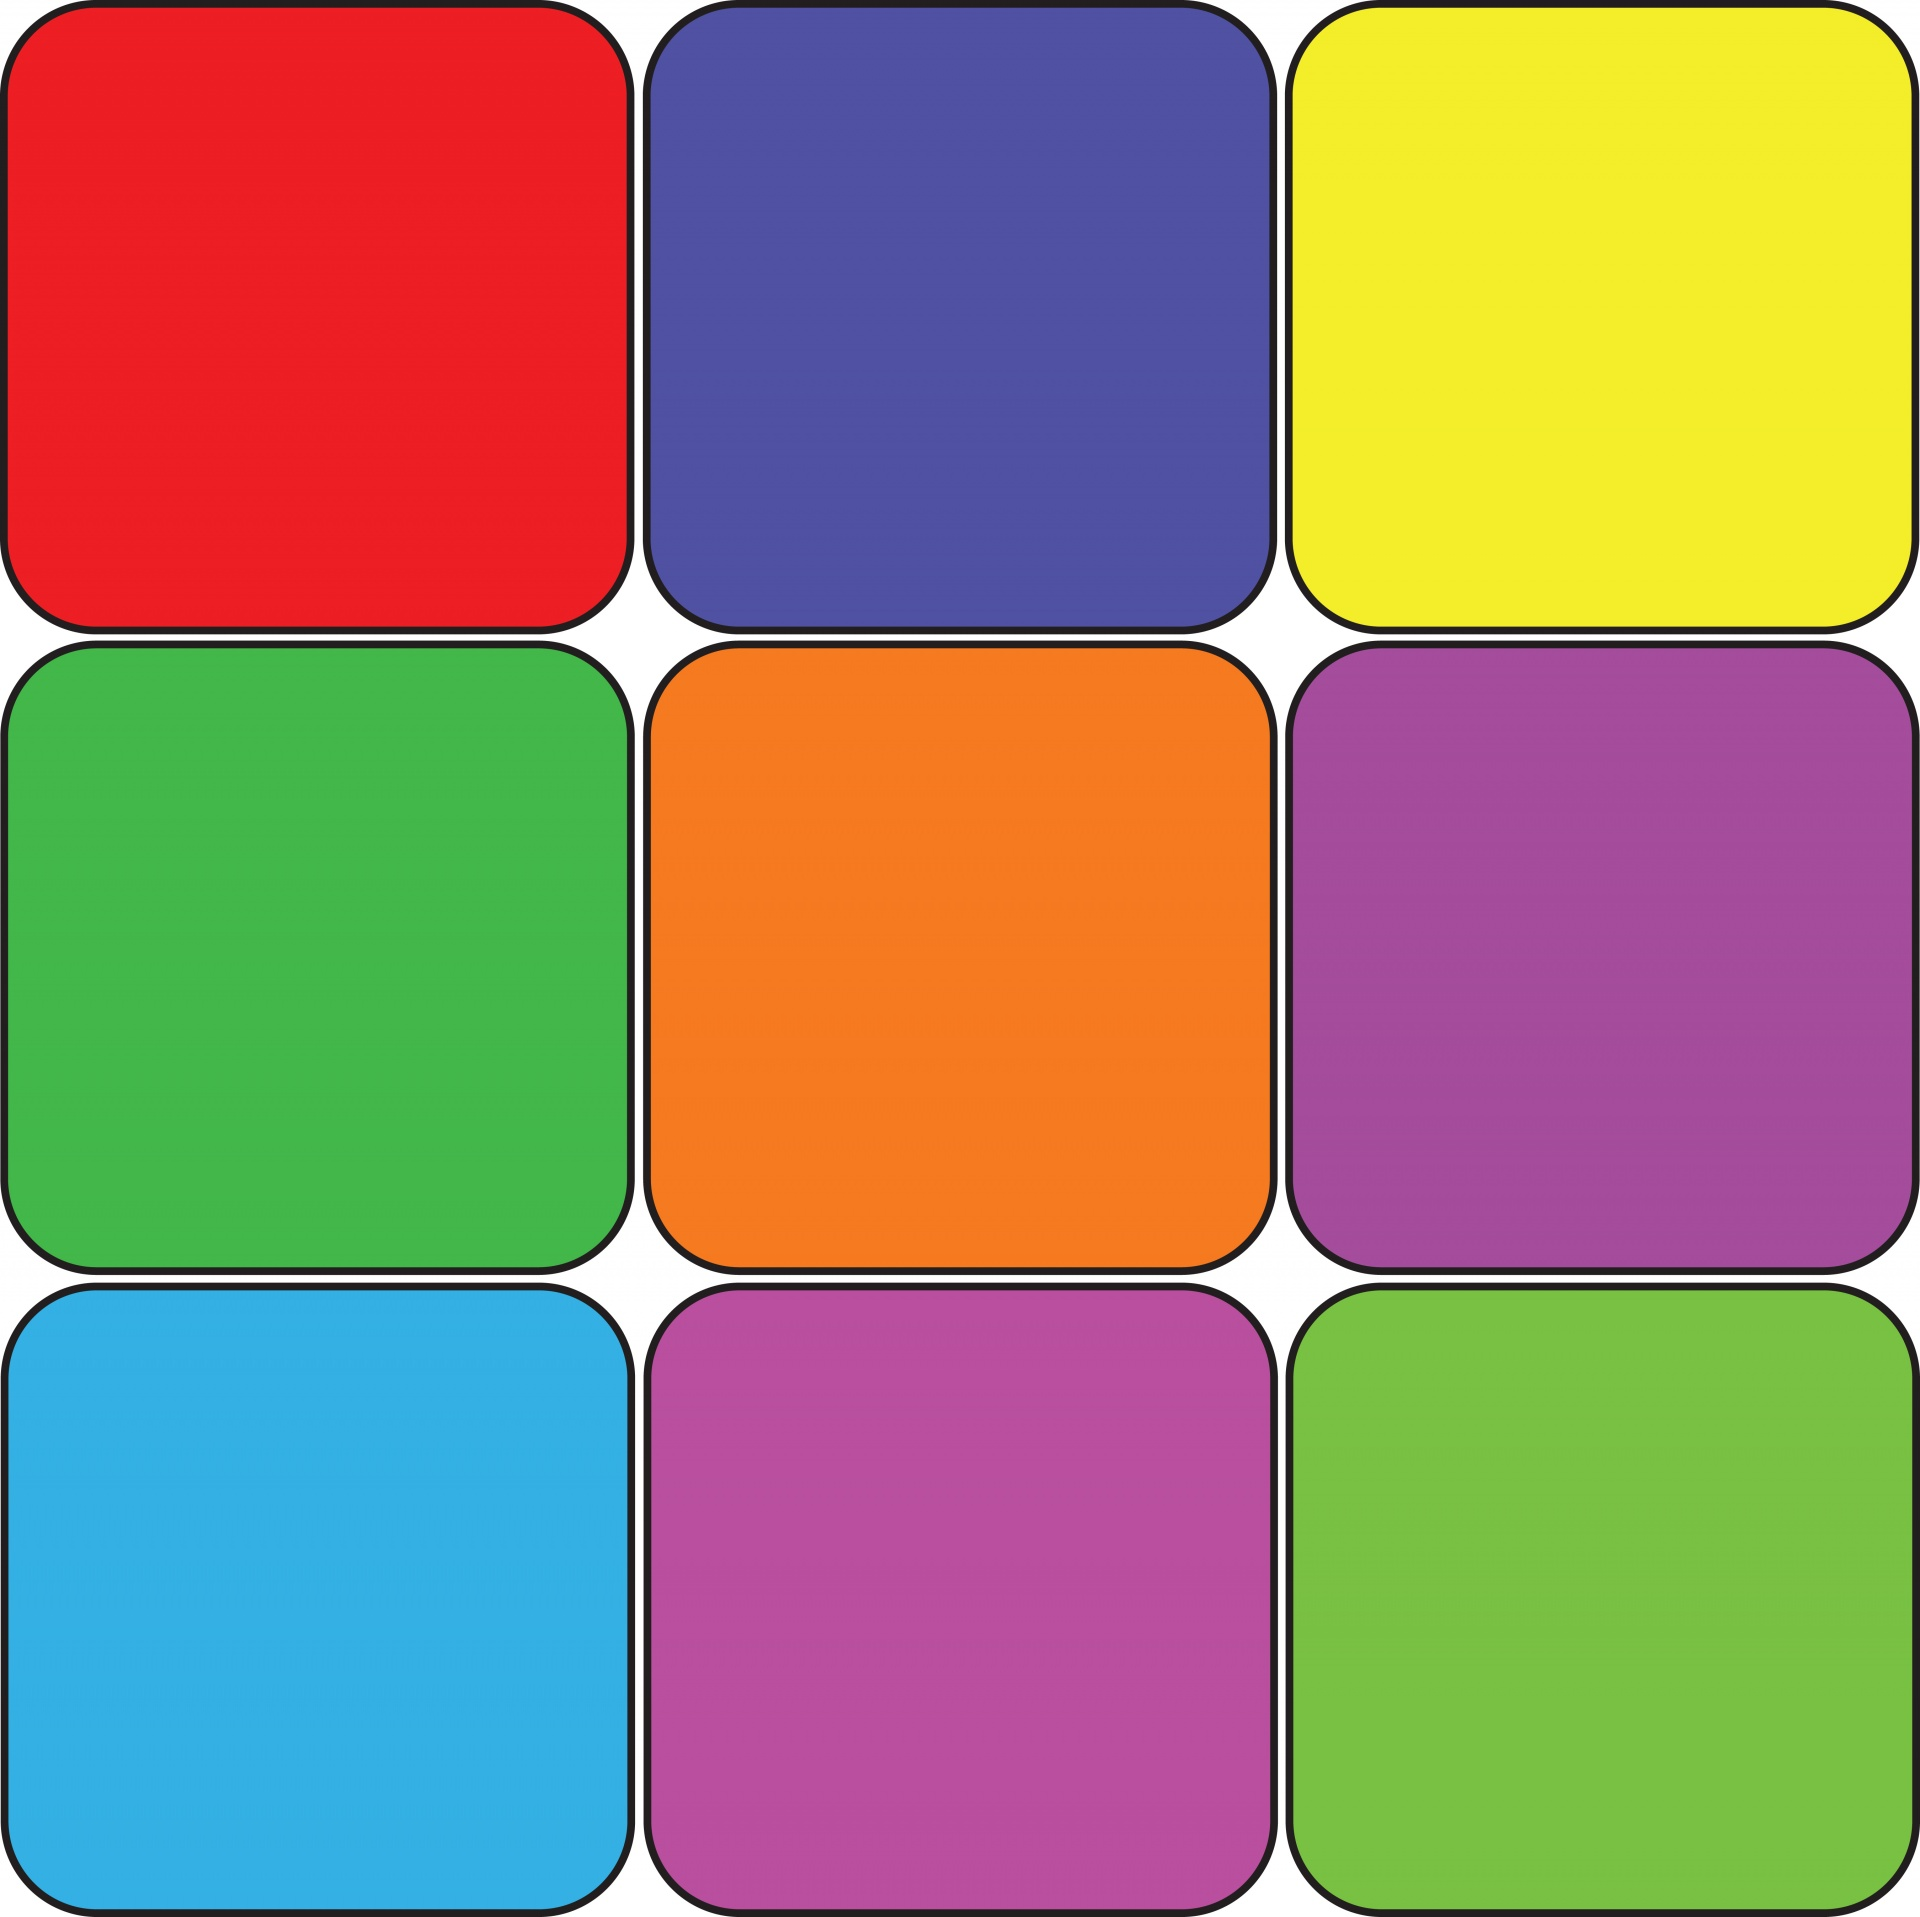 Squares clipart colored Photo Free Squares Colored 9